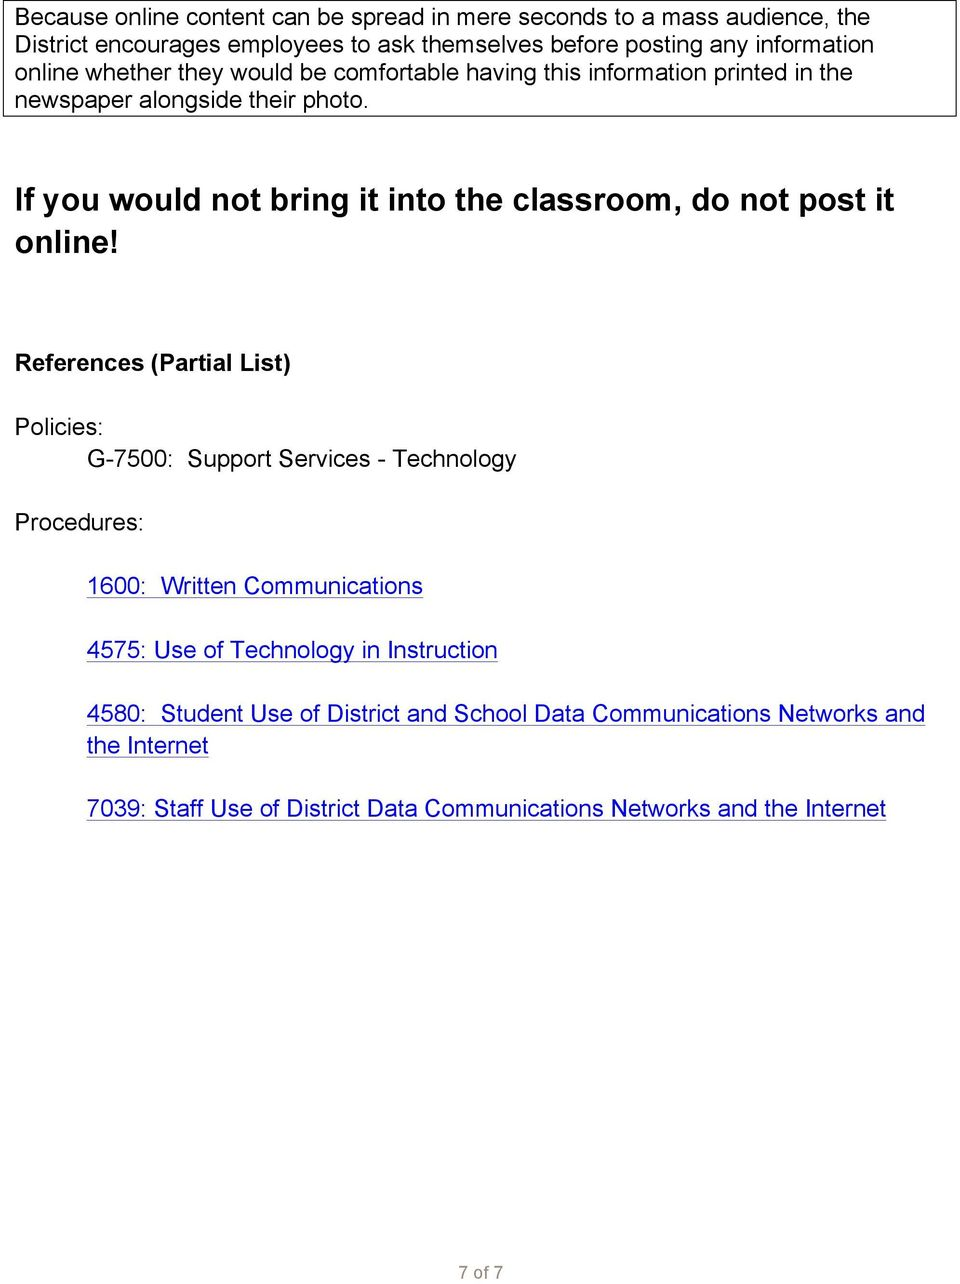 If you would not bring it into the classroom, do not post it online!